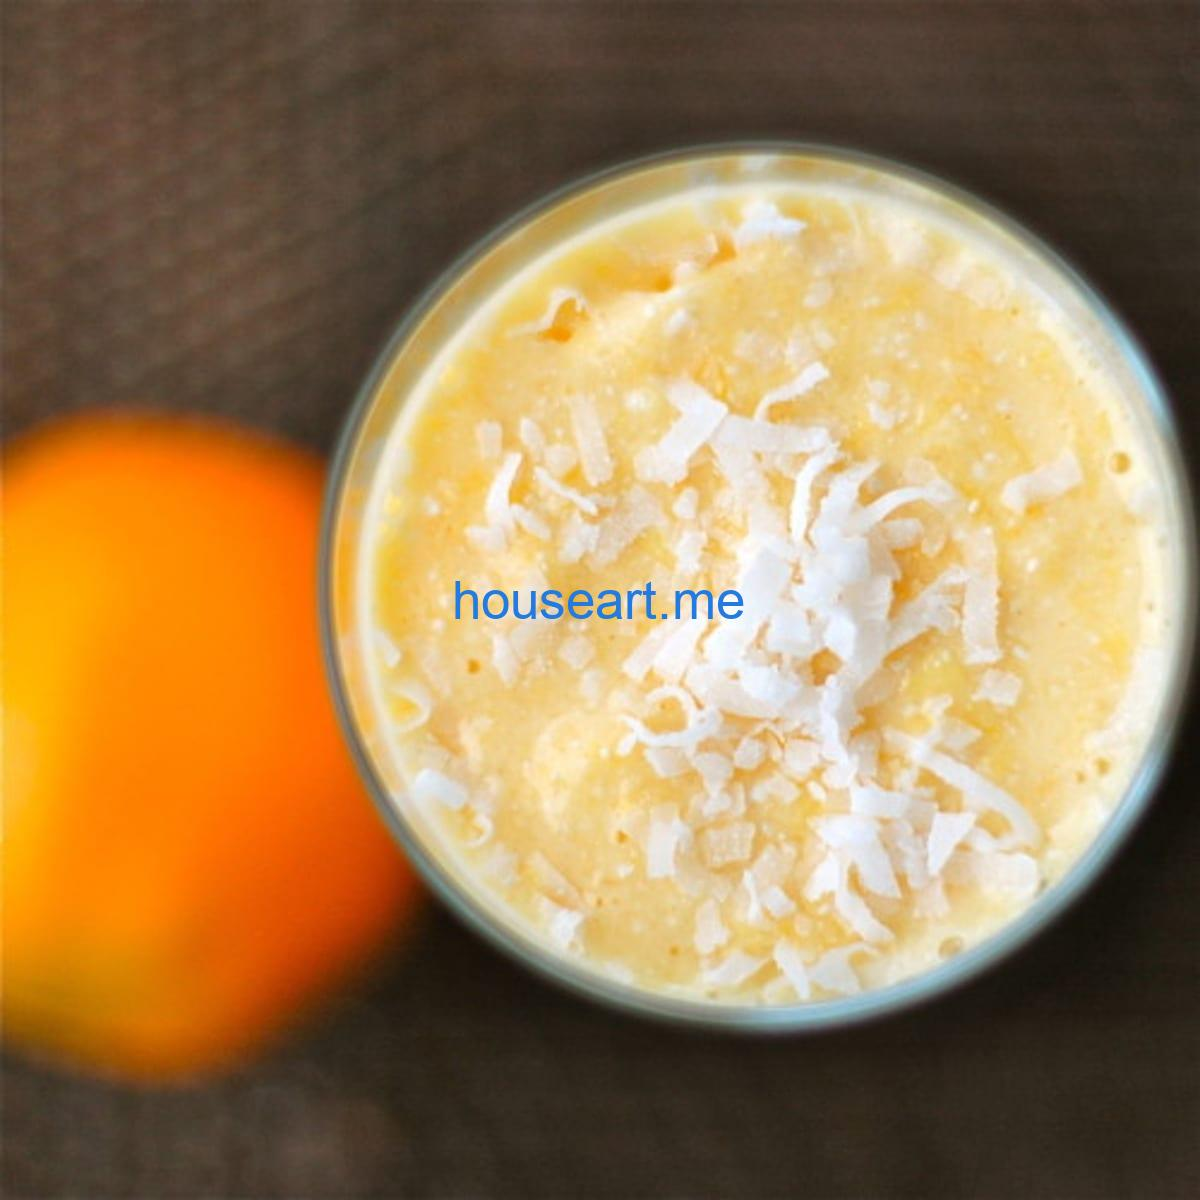 Coconut pineapple orange smoothie with coconut shreds on top.